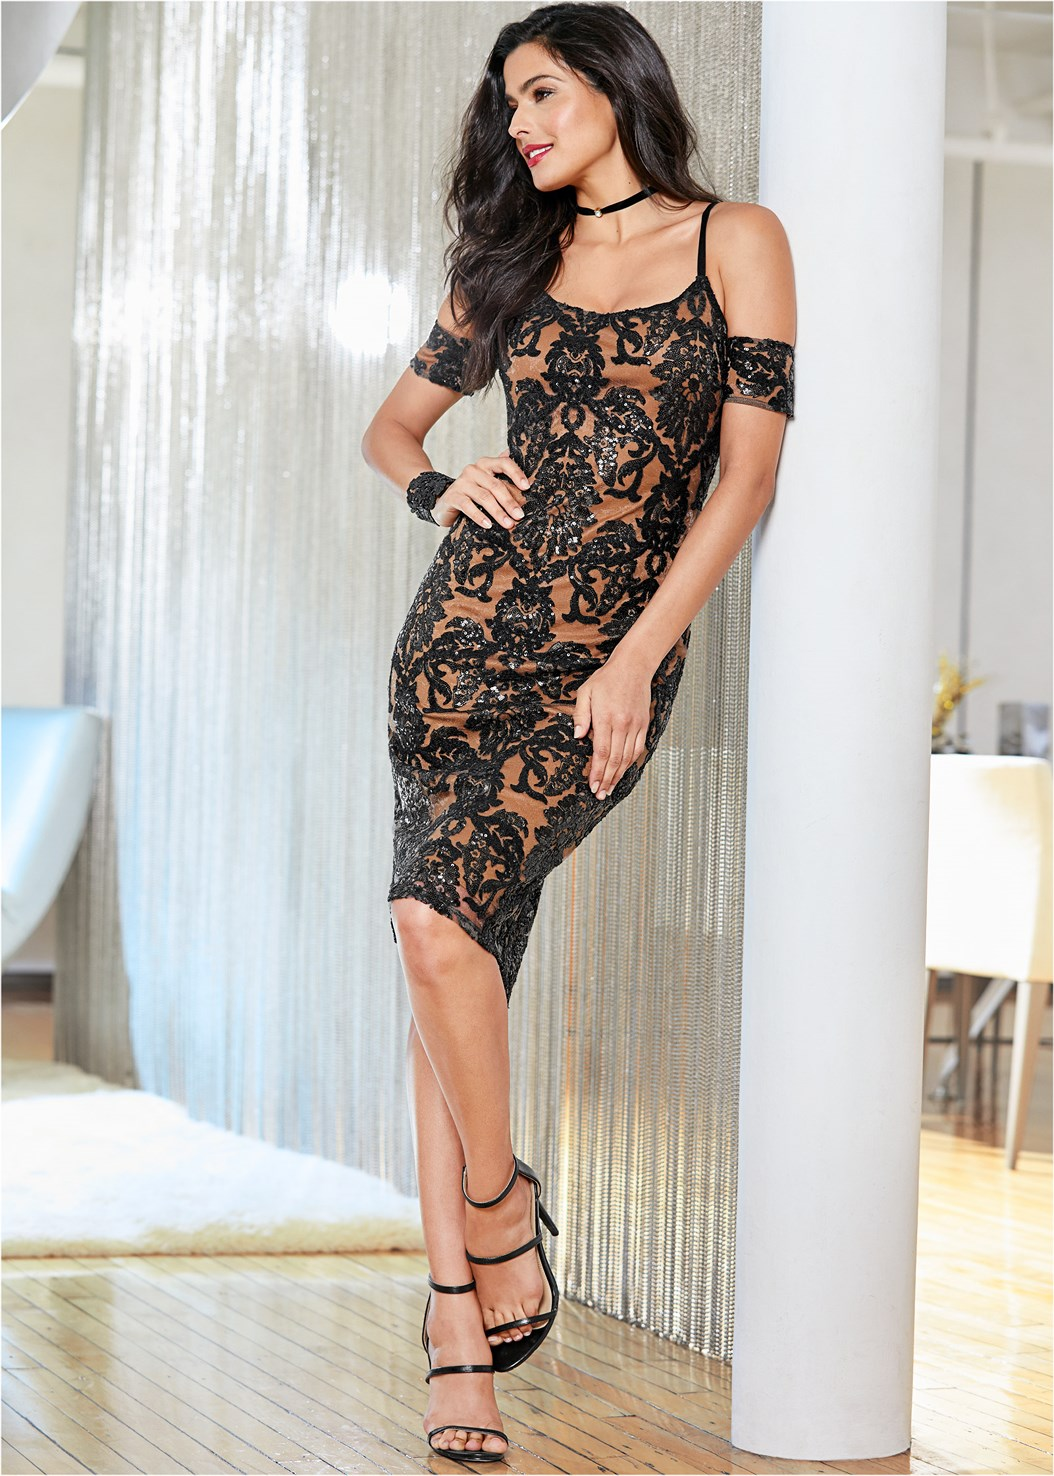 Sequin Cold Shoulder Dress,High Heel Strappy Sandals,Confidence Tummy Shaper